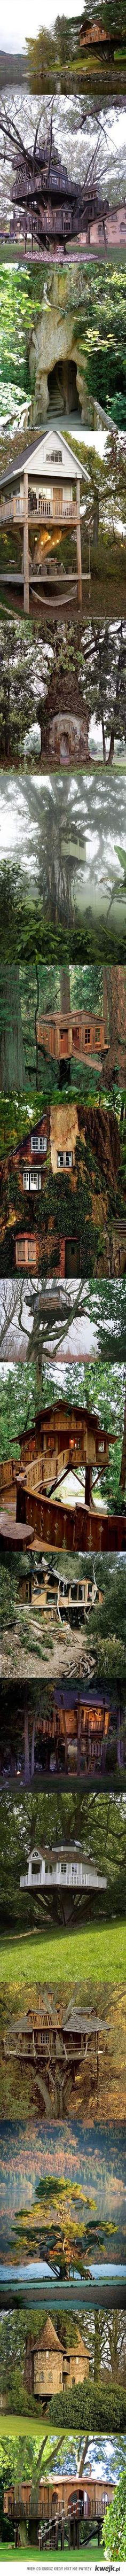 Tree houses; I'd live in any of these!